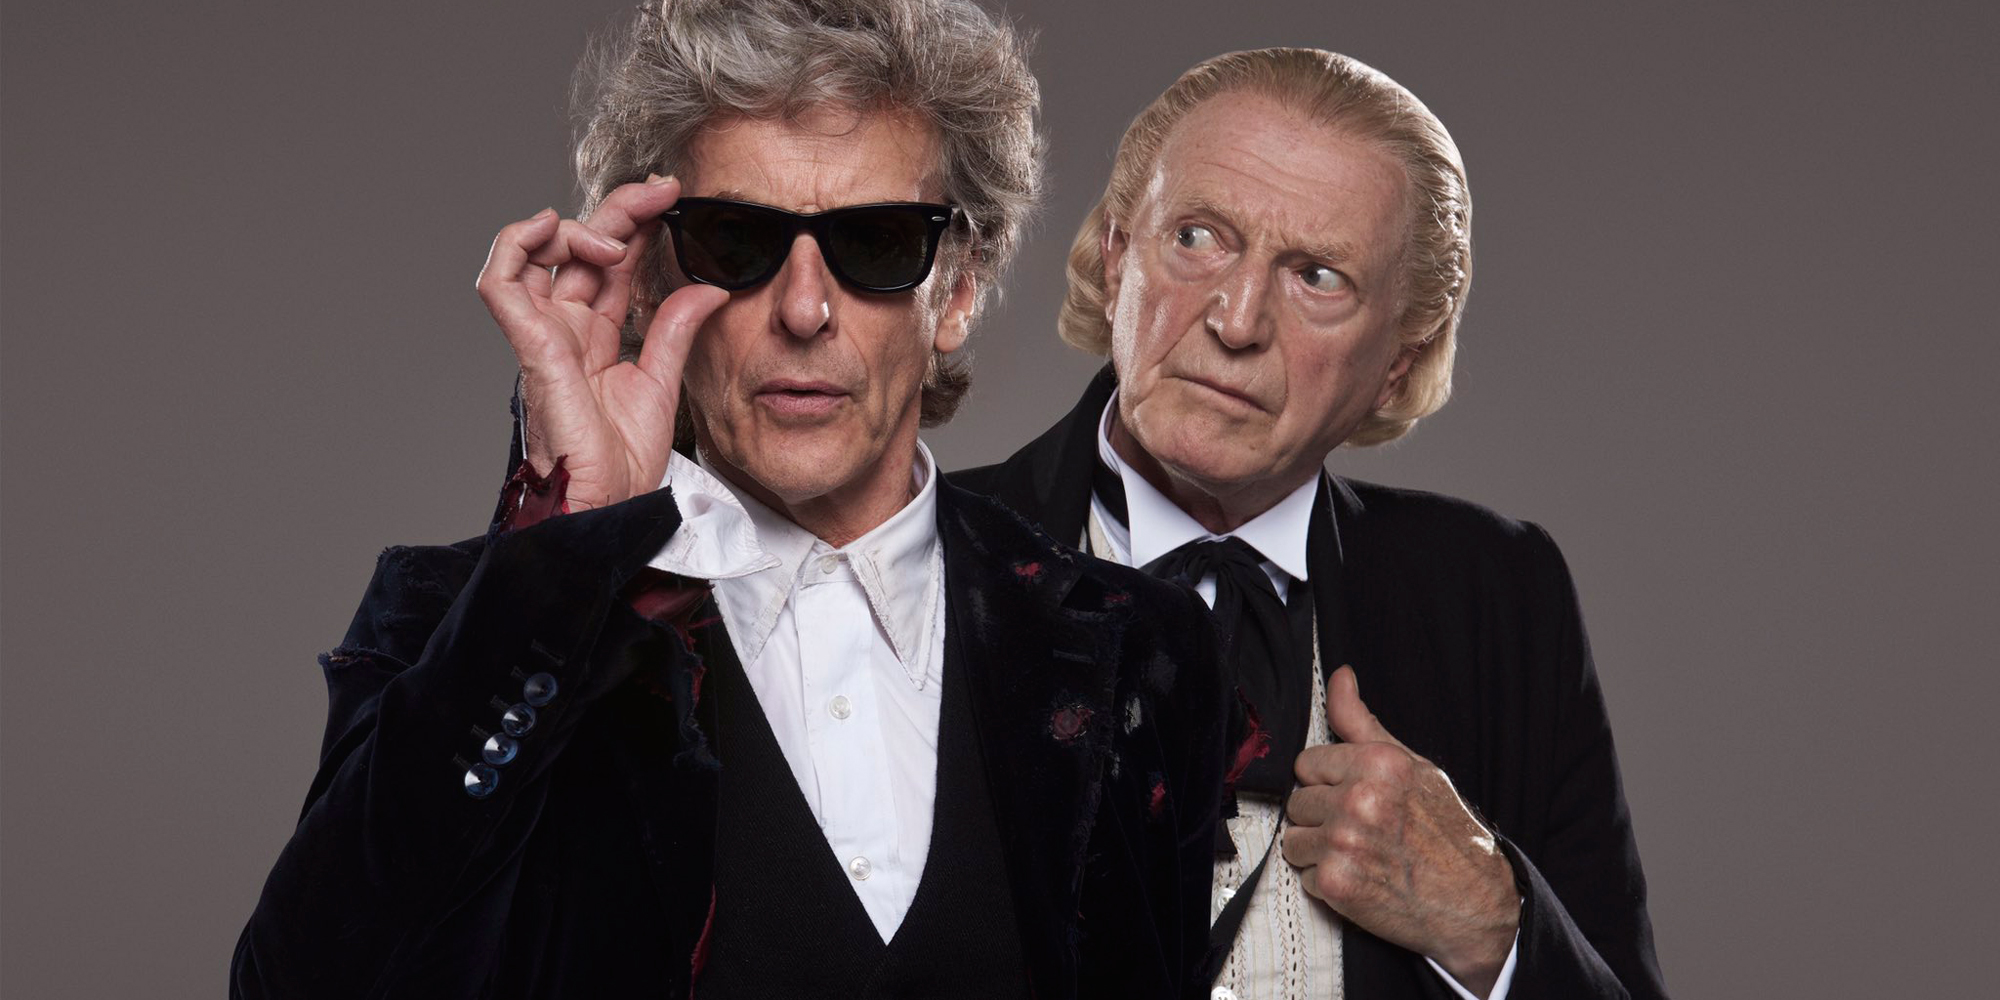 LOOK: Doctor Who: Christmas Special Teased in New Image